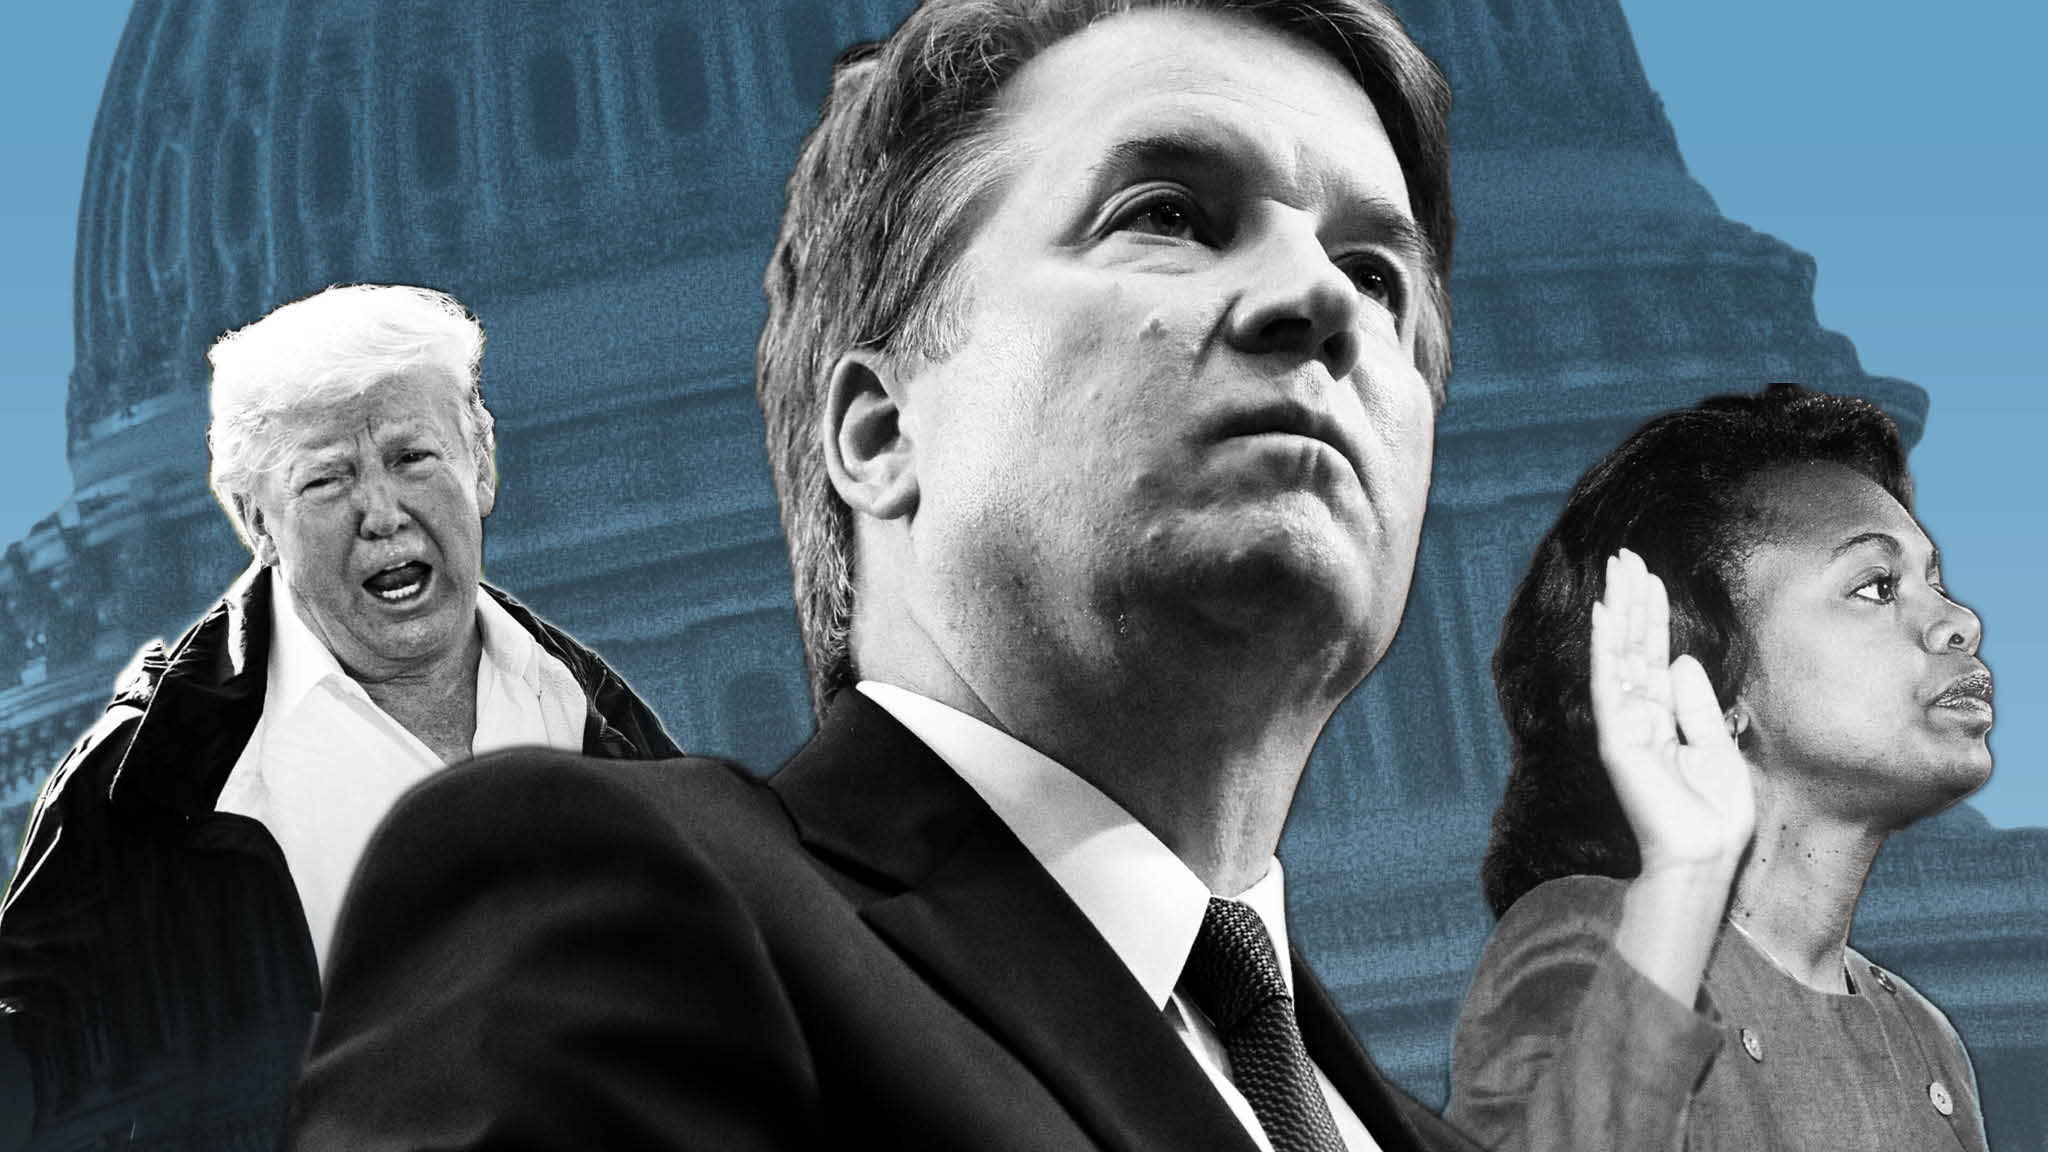 'Time for the good ol' boys to step back': Women, politics and the Supreme Court